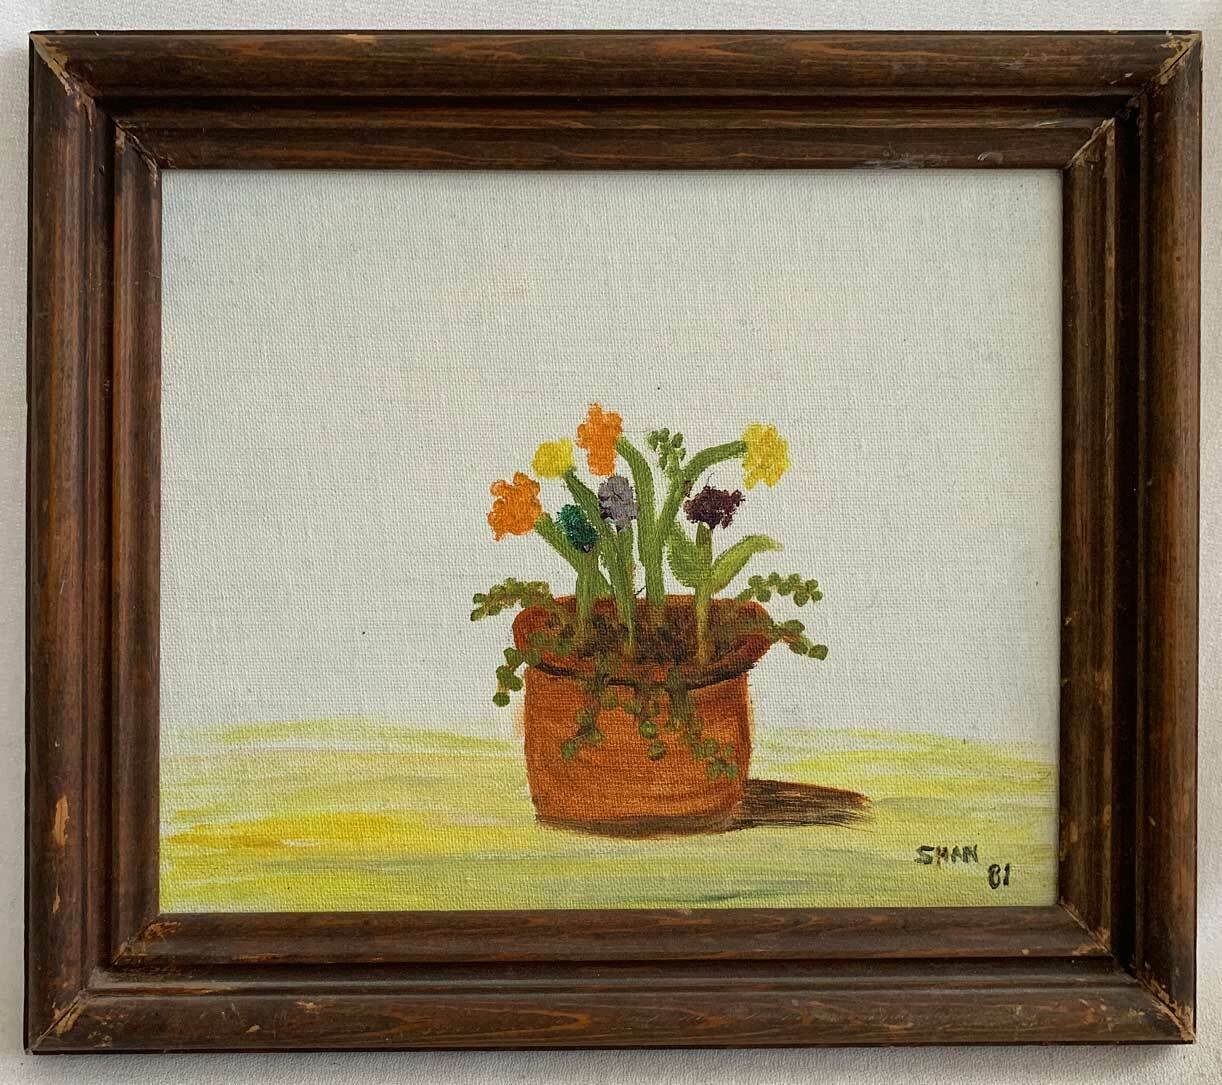 S Prince Vintage Outsider Art Painting Flowers Drooping Sunny Pot Still Life